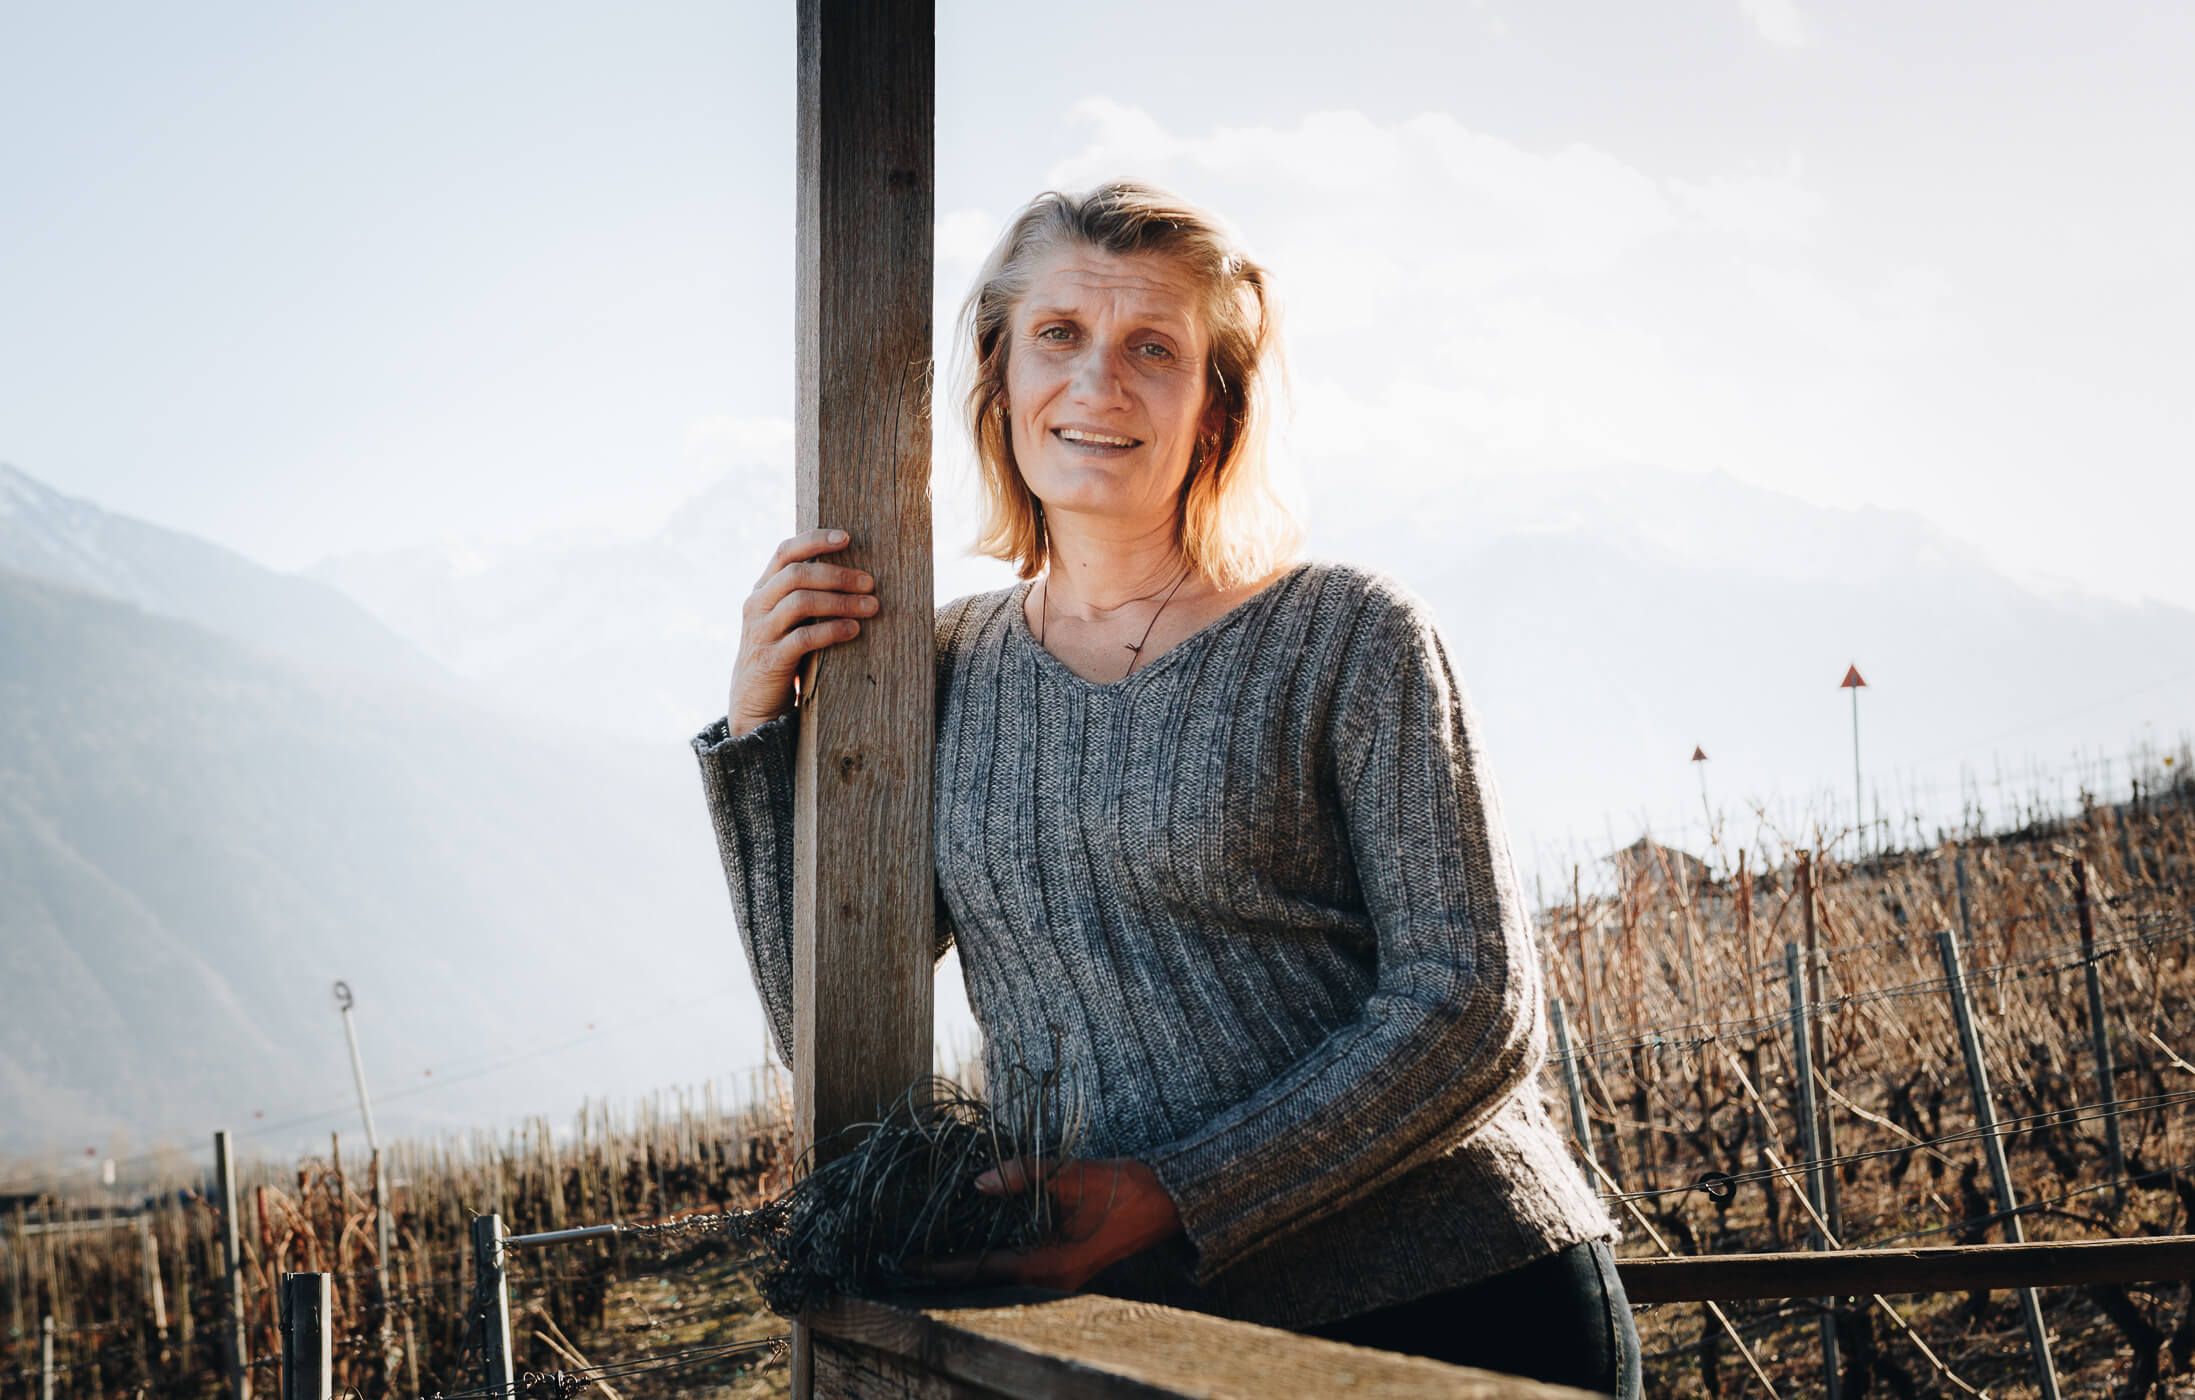 images/vigne-rolle/vigneronnes/isabelle_Anay.jpg